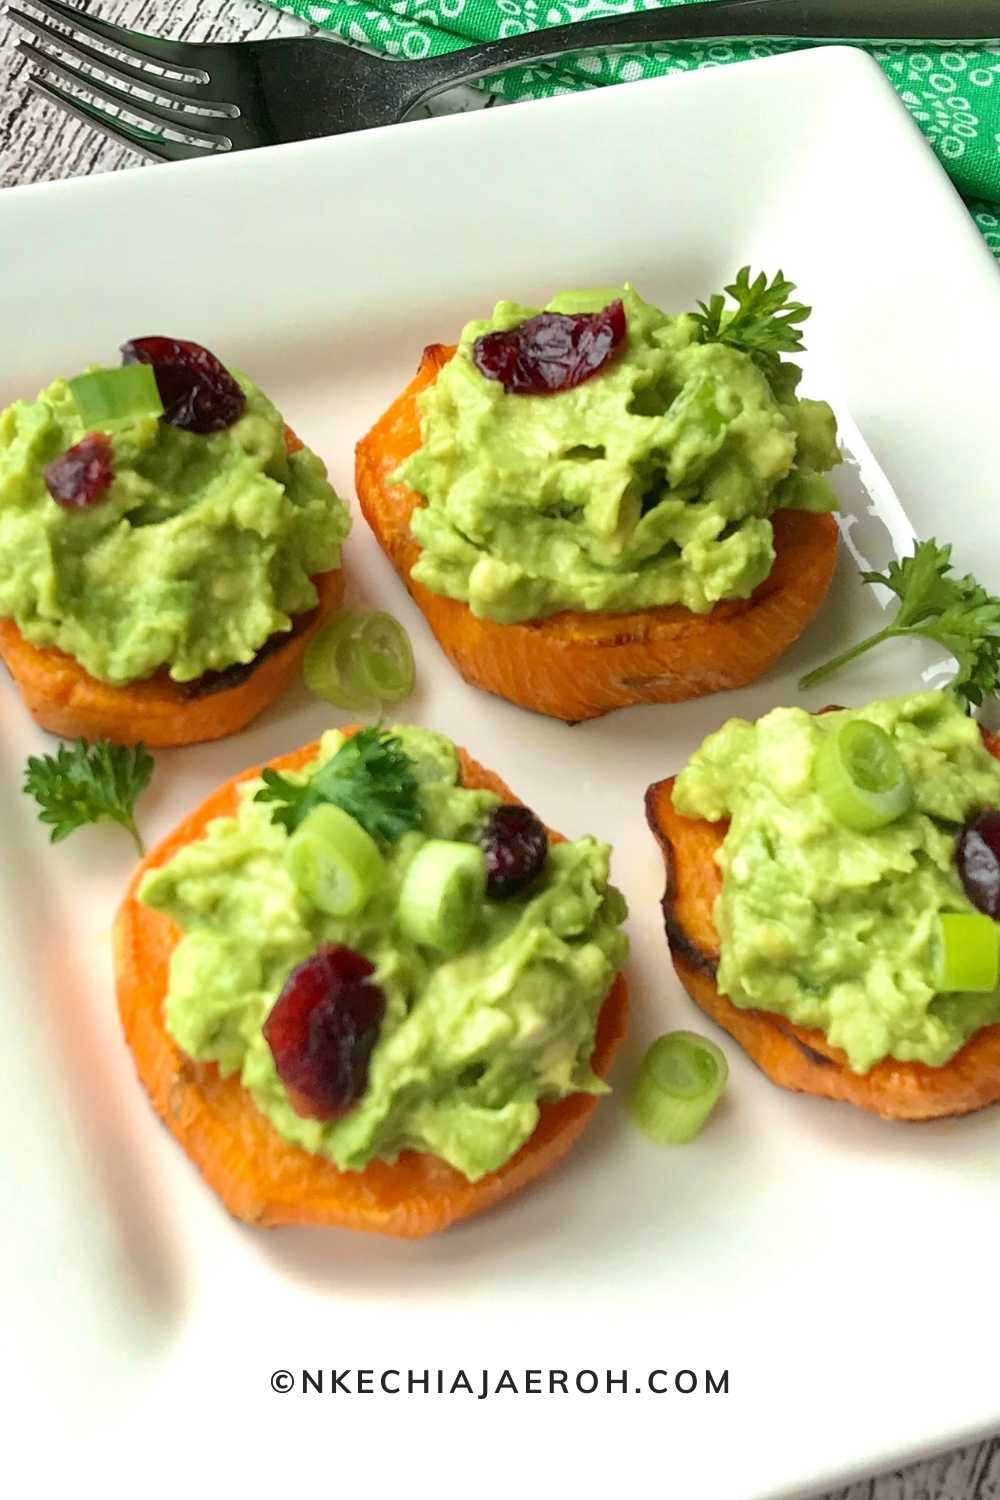 These baked sweet potato avocado rounds are just the perfect appetizer, snack, and all-round best crowd-pleasing finger food! Whether you are welcoming guests or preparing for a family get-together, this healthy sweet potato cups with guacamole is a must! Also, these healthy bites are vegan, low carb, gluten-free, and super easy to make!